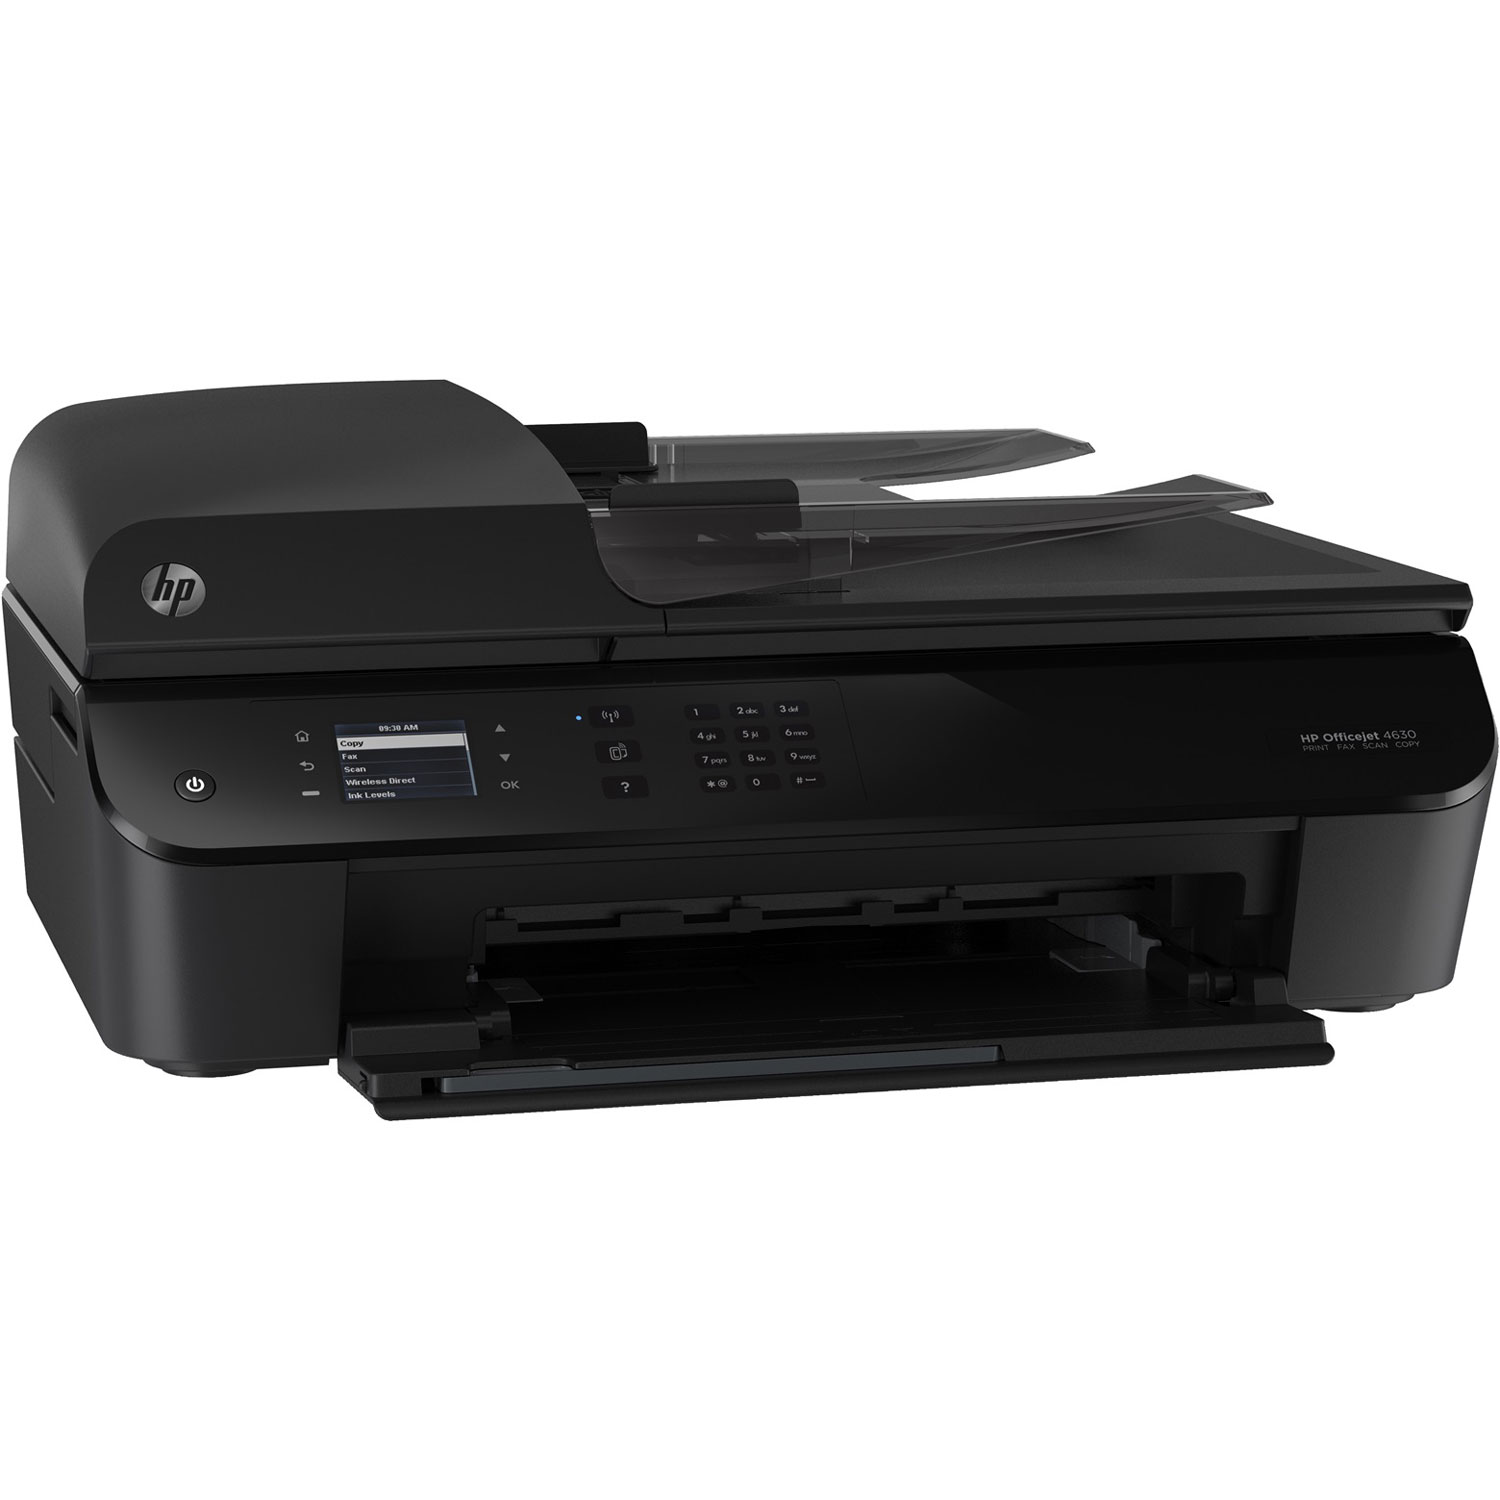 hp officejet 4632 e tout en un imprimante multifonction. Black Bedroom Furniture Sets. Home Design Ideas